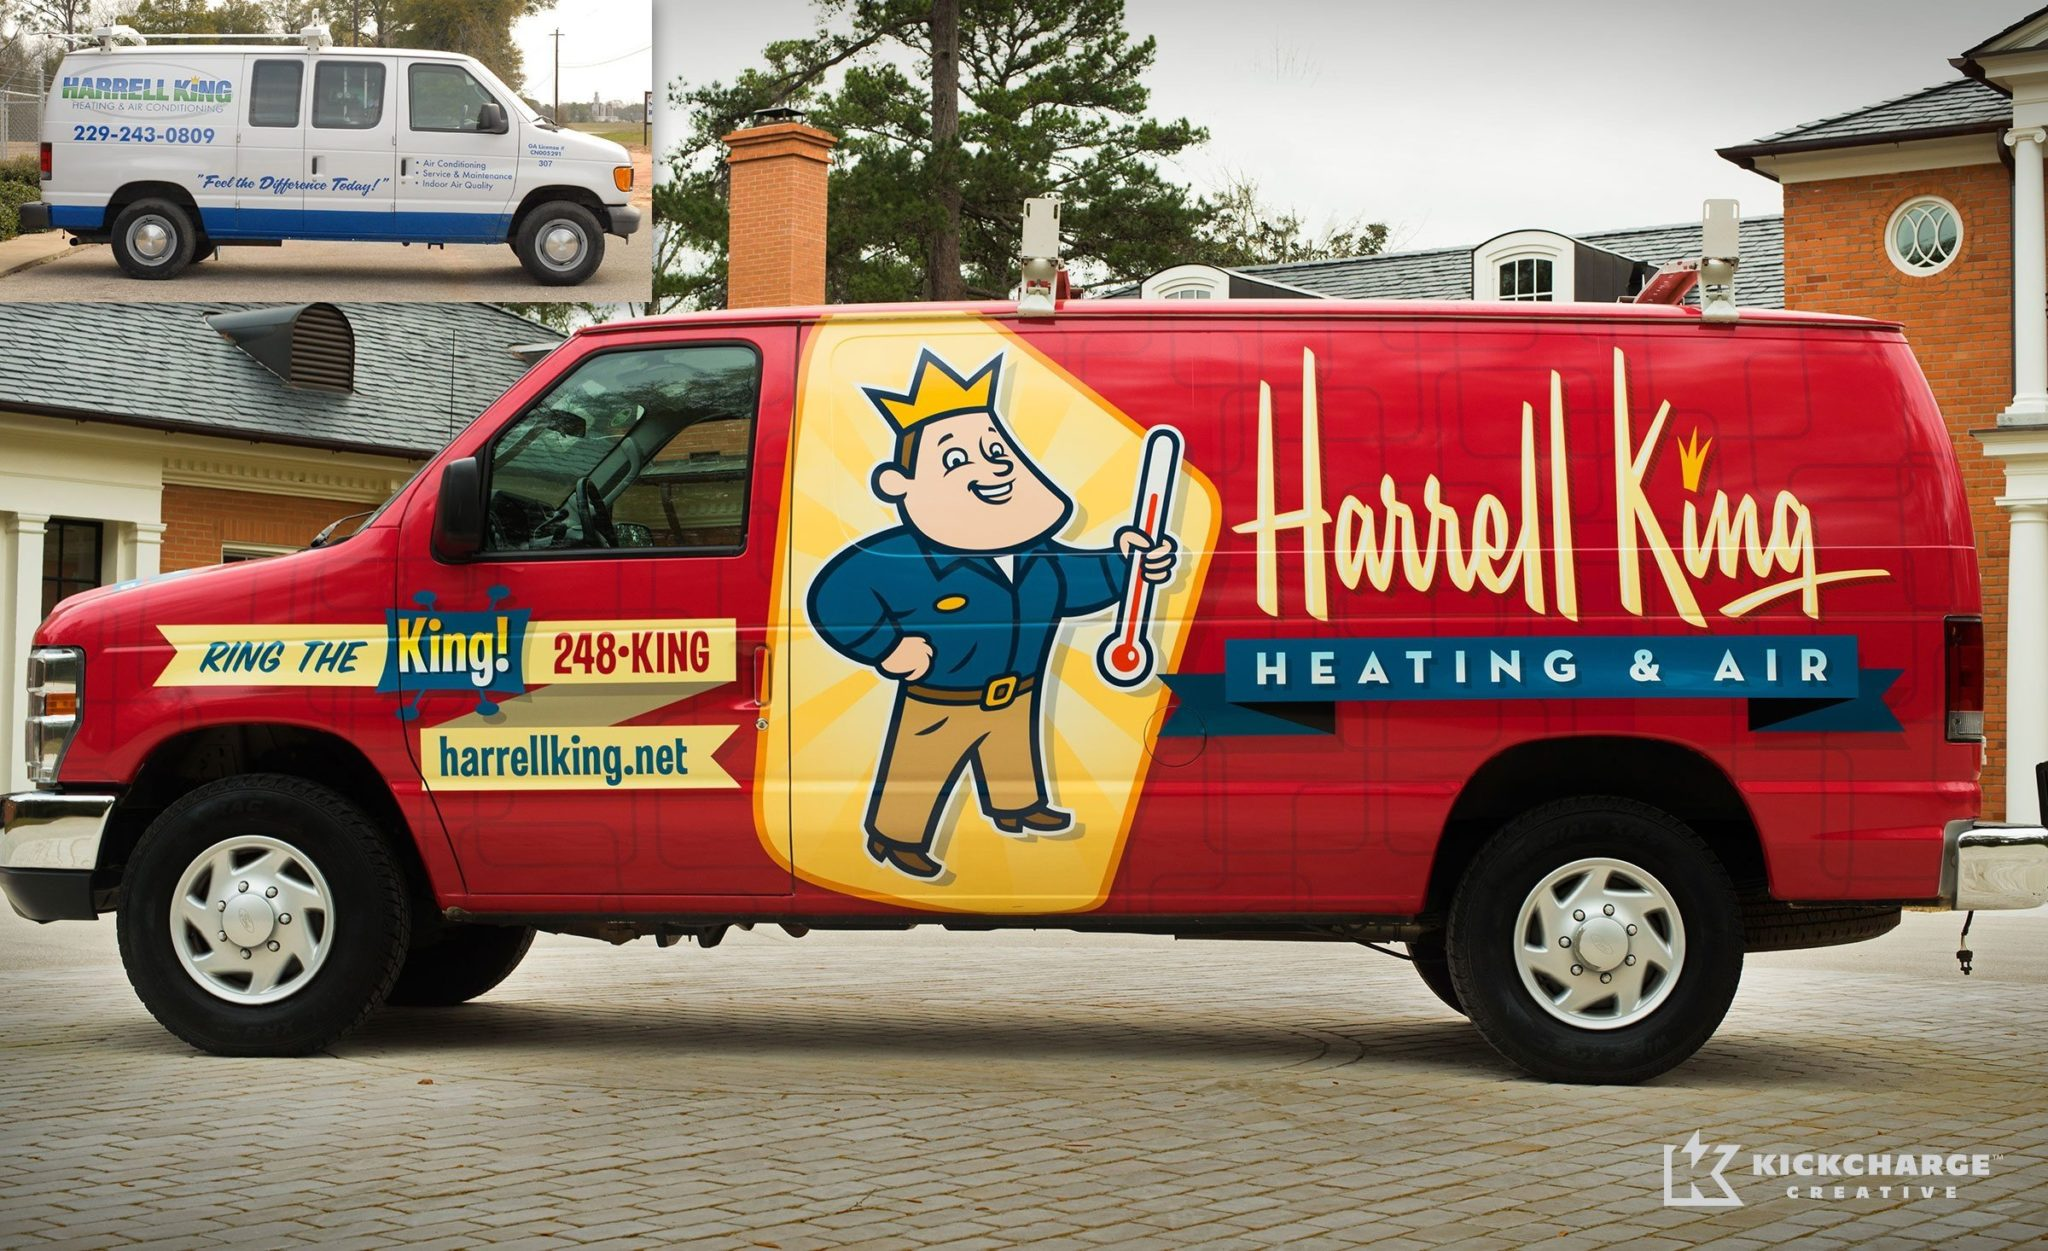 Before & after truck wrap design for a heating and air contractor in Georgia.